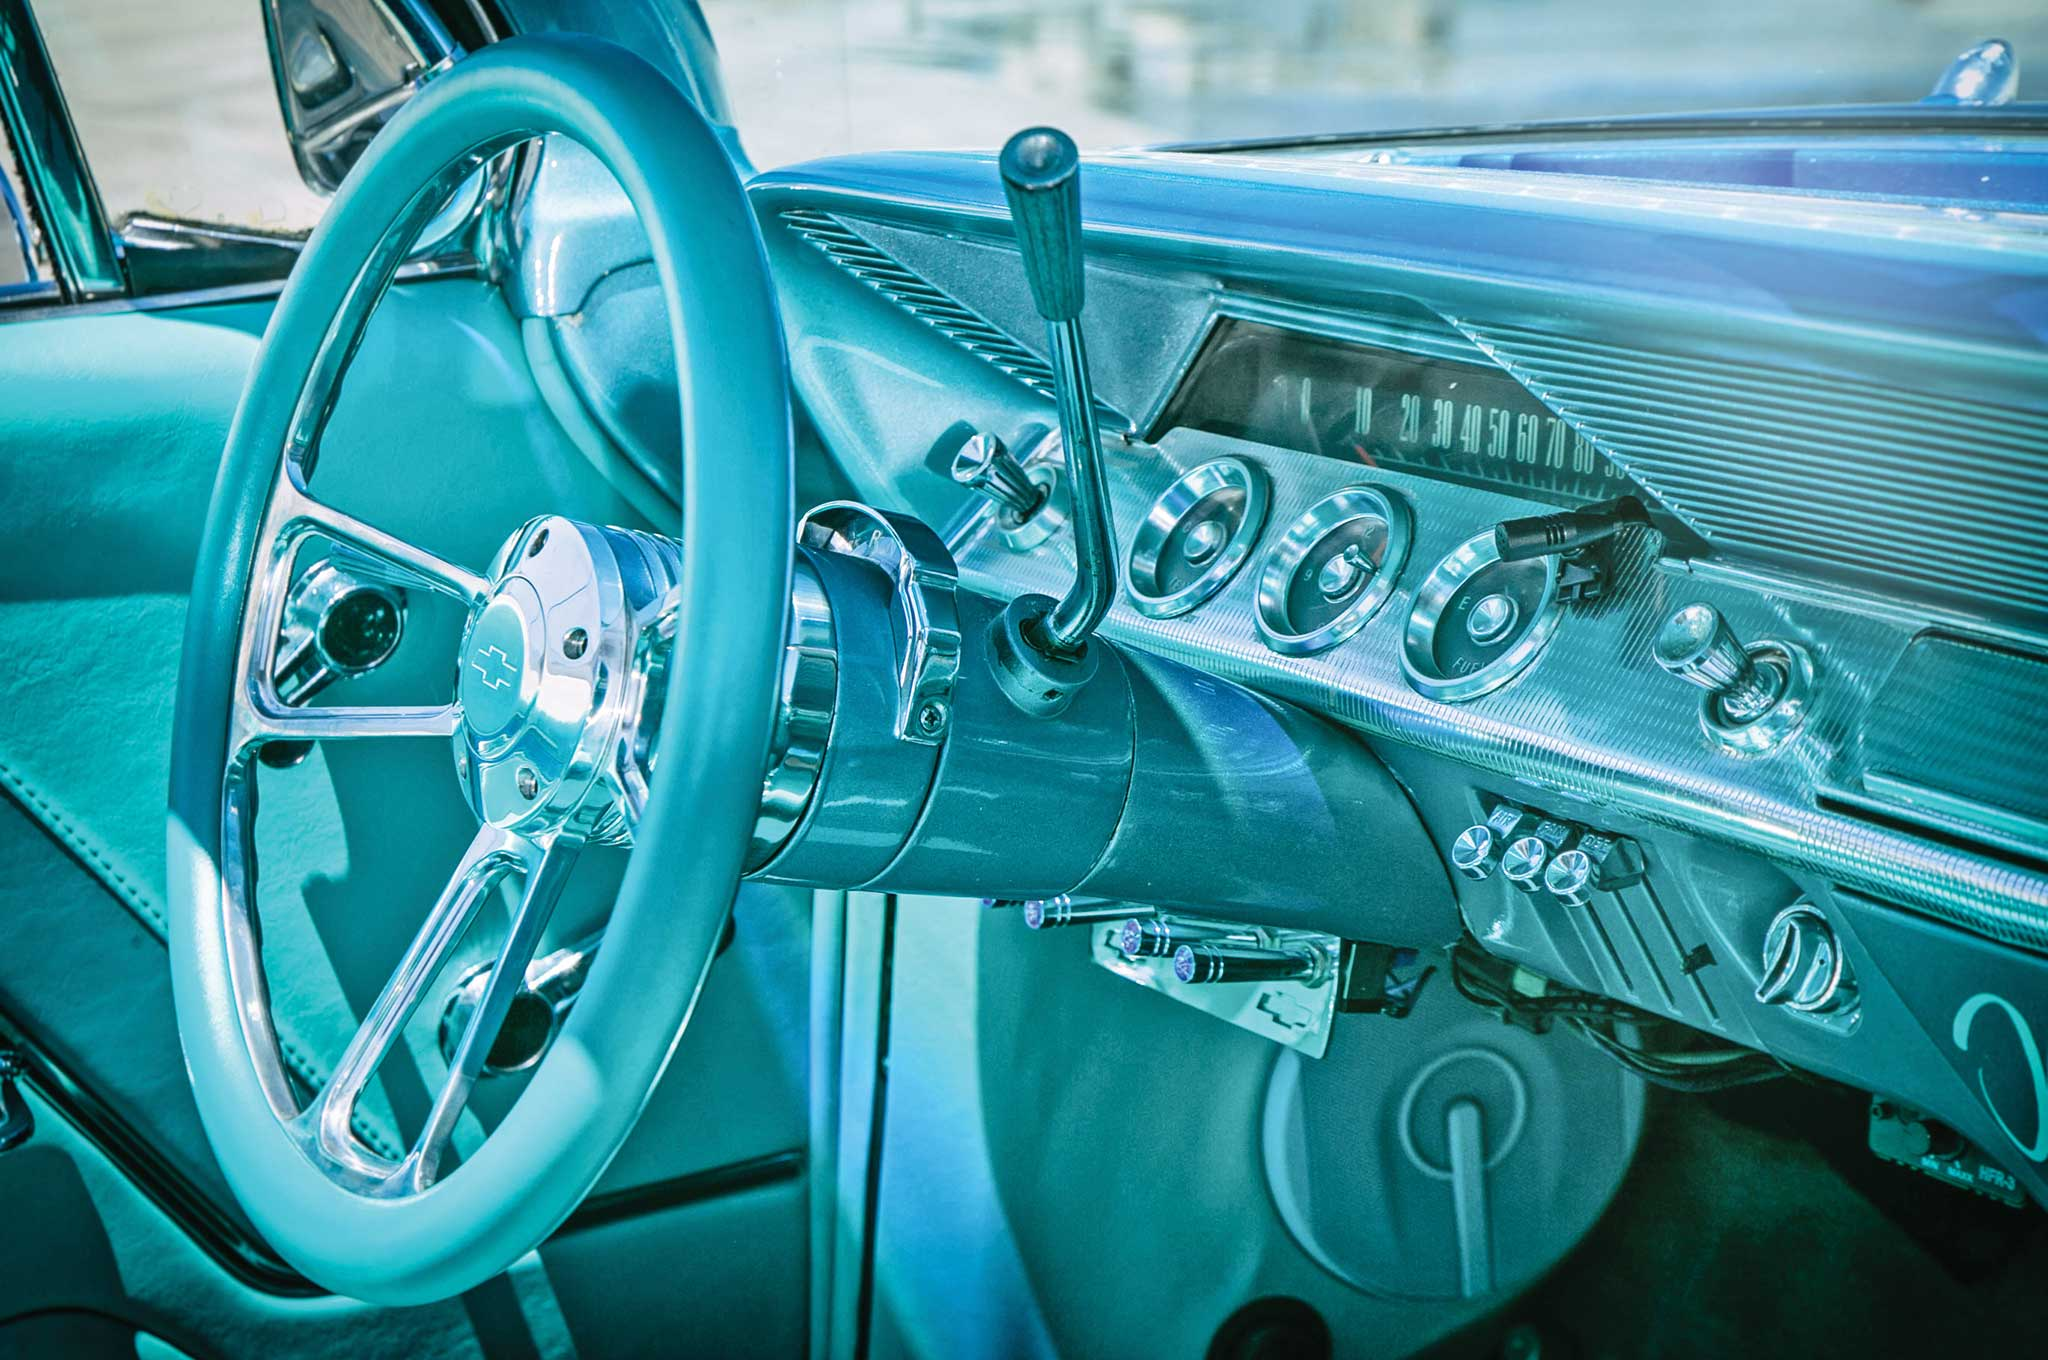 1962 Chevrolet Impala SS Convertible - Driving Topless